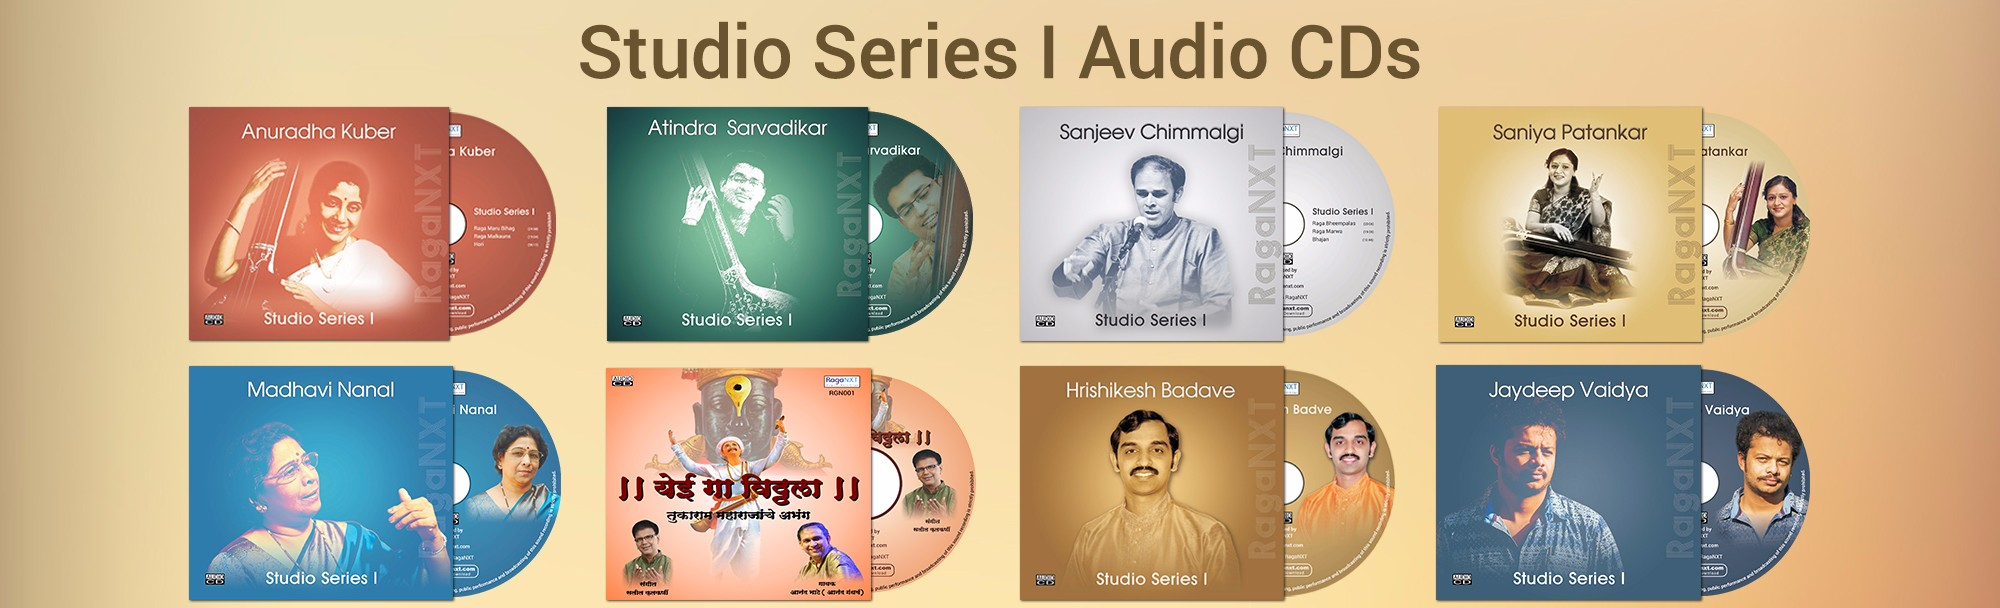 Studio series I Audio cds